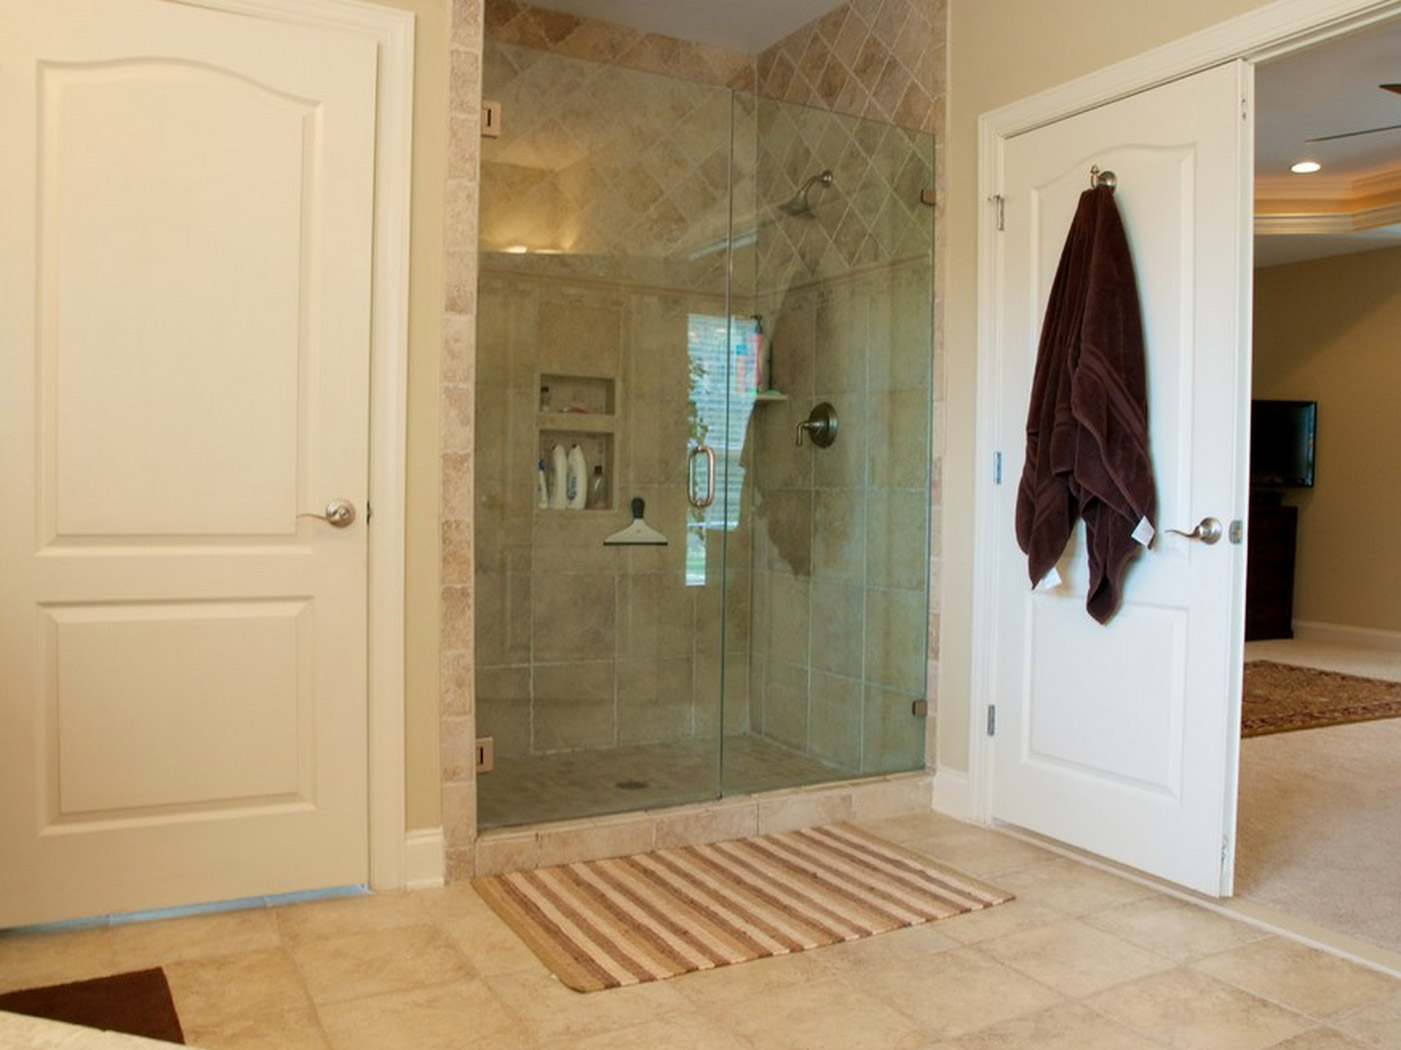 Shower in master bathroom remodel in Loudoun county VA